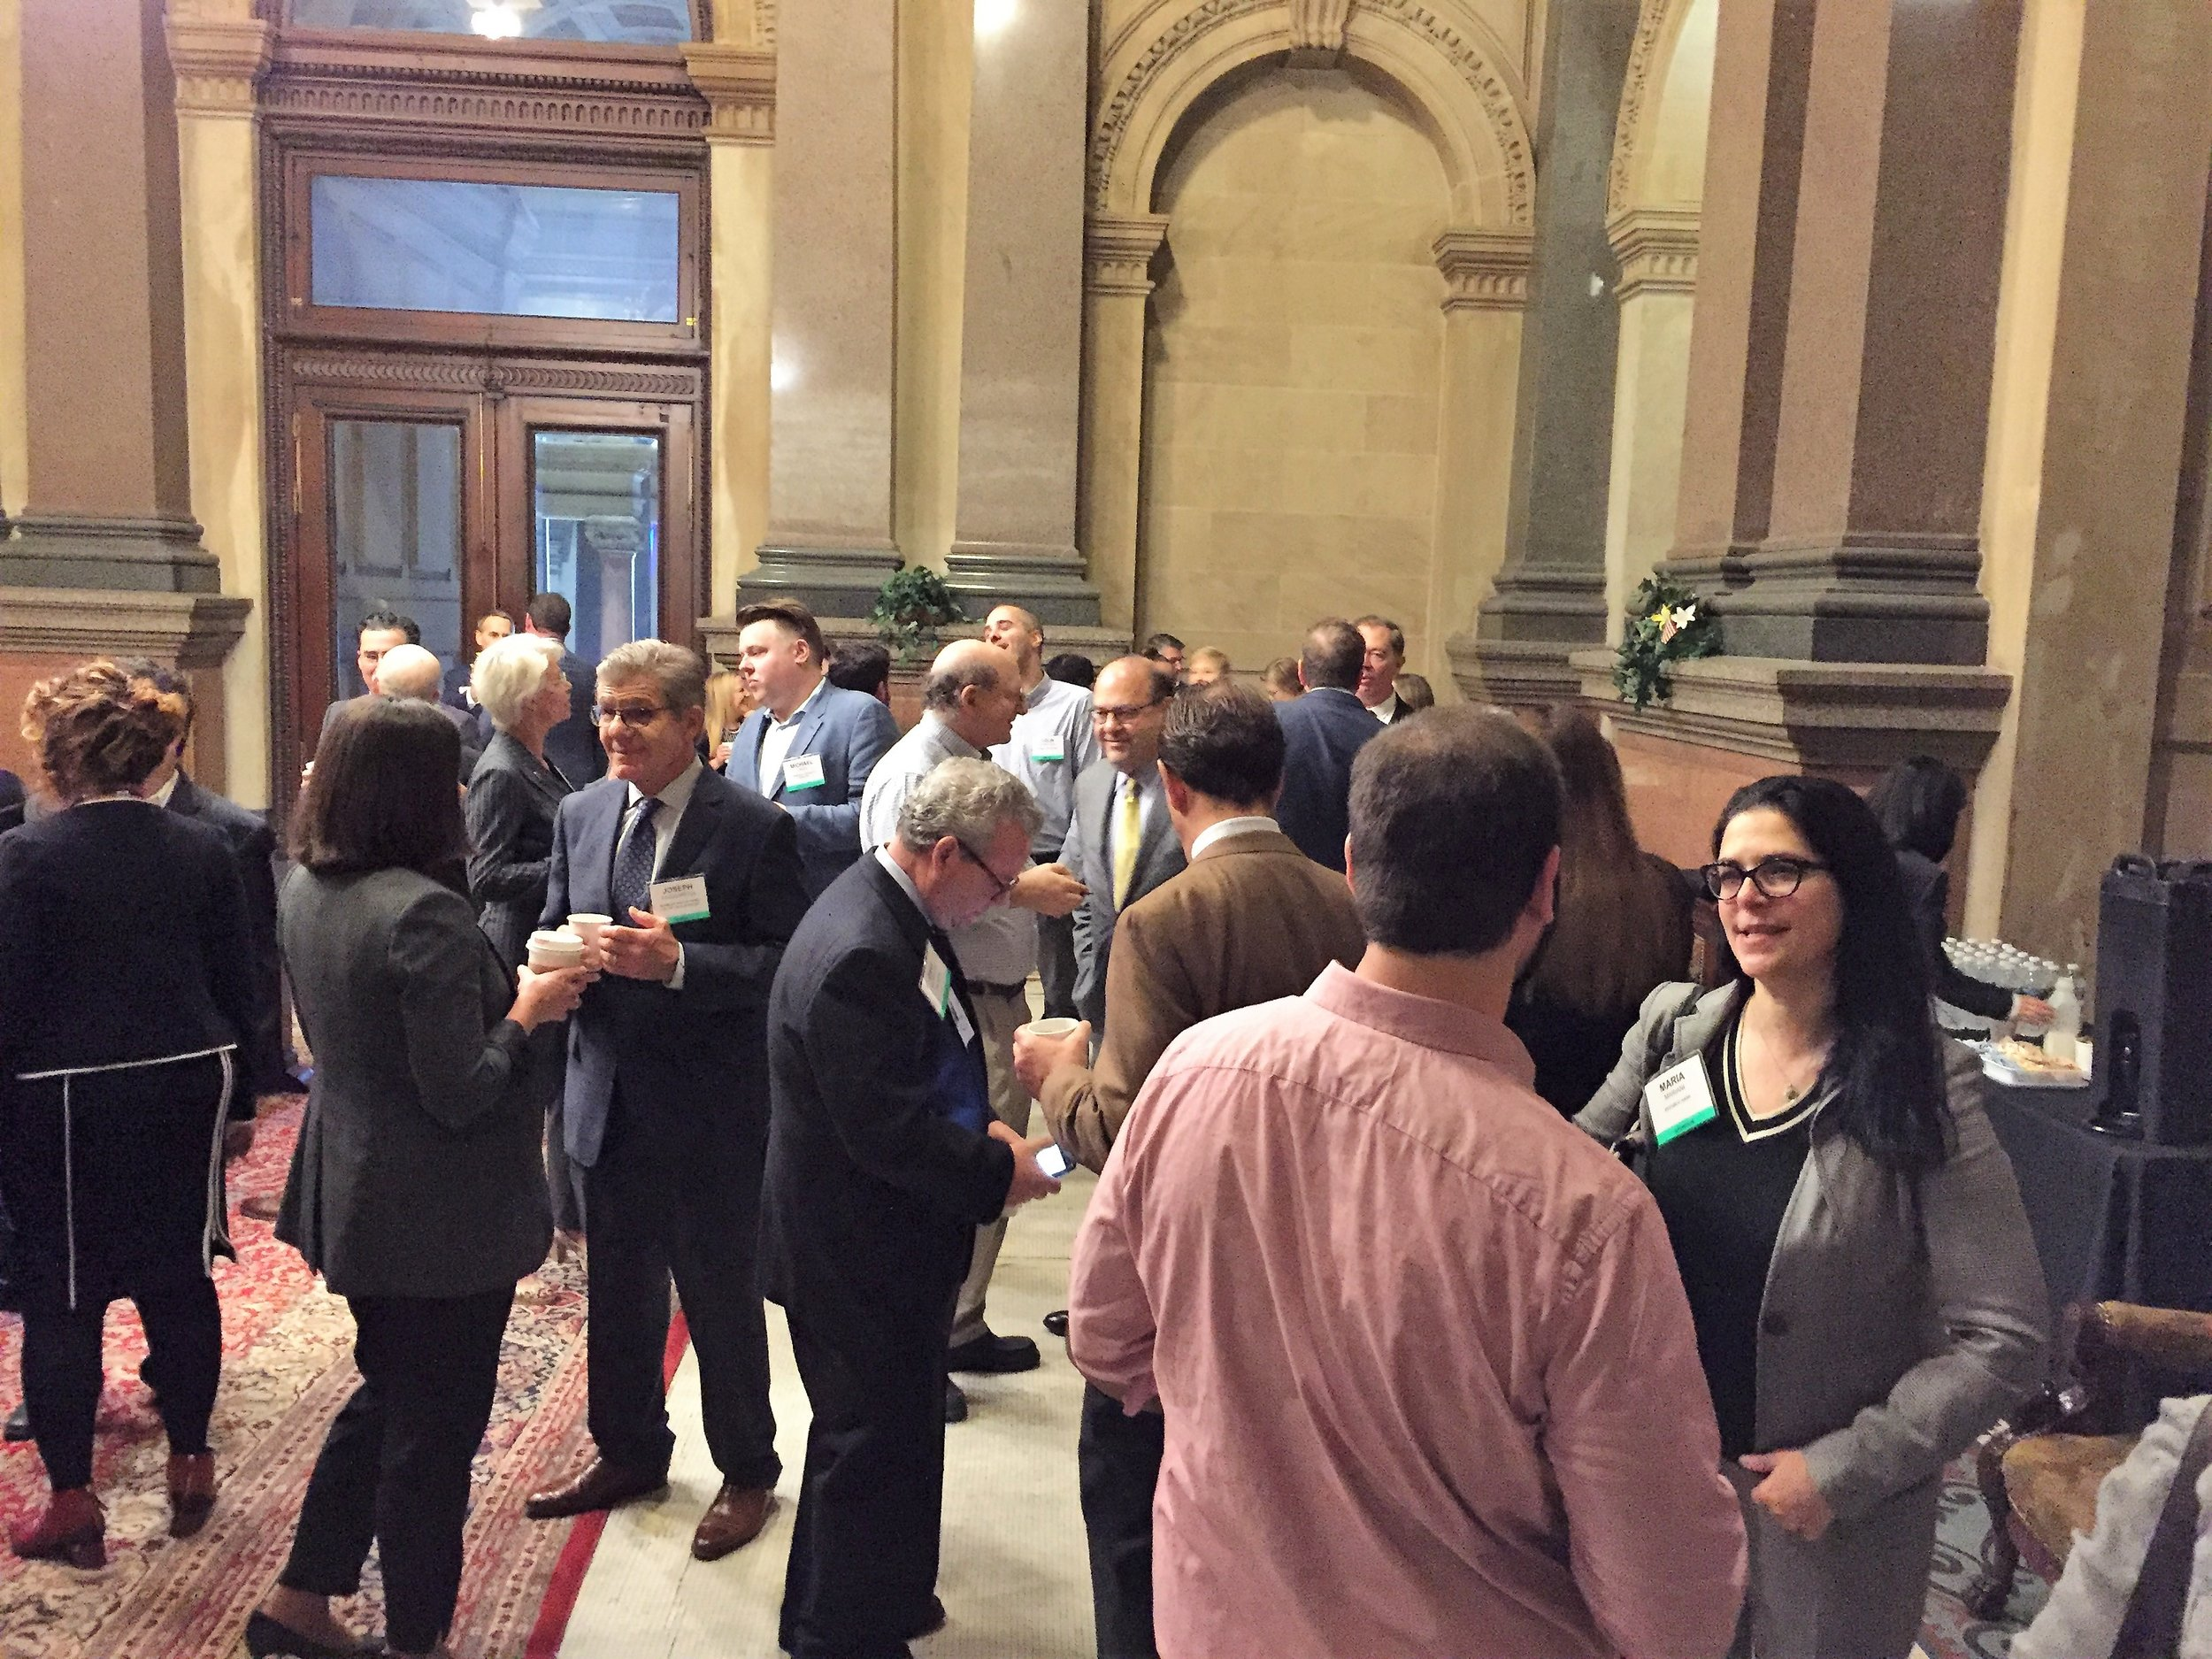 5-9-19 HHBfast City Hall Photo 8.JPG